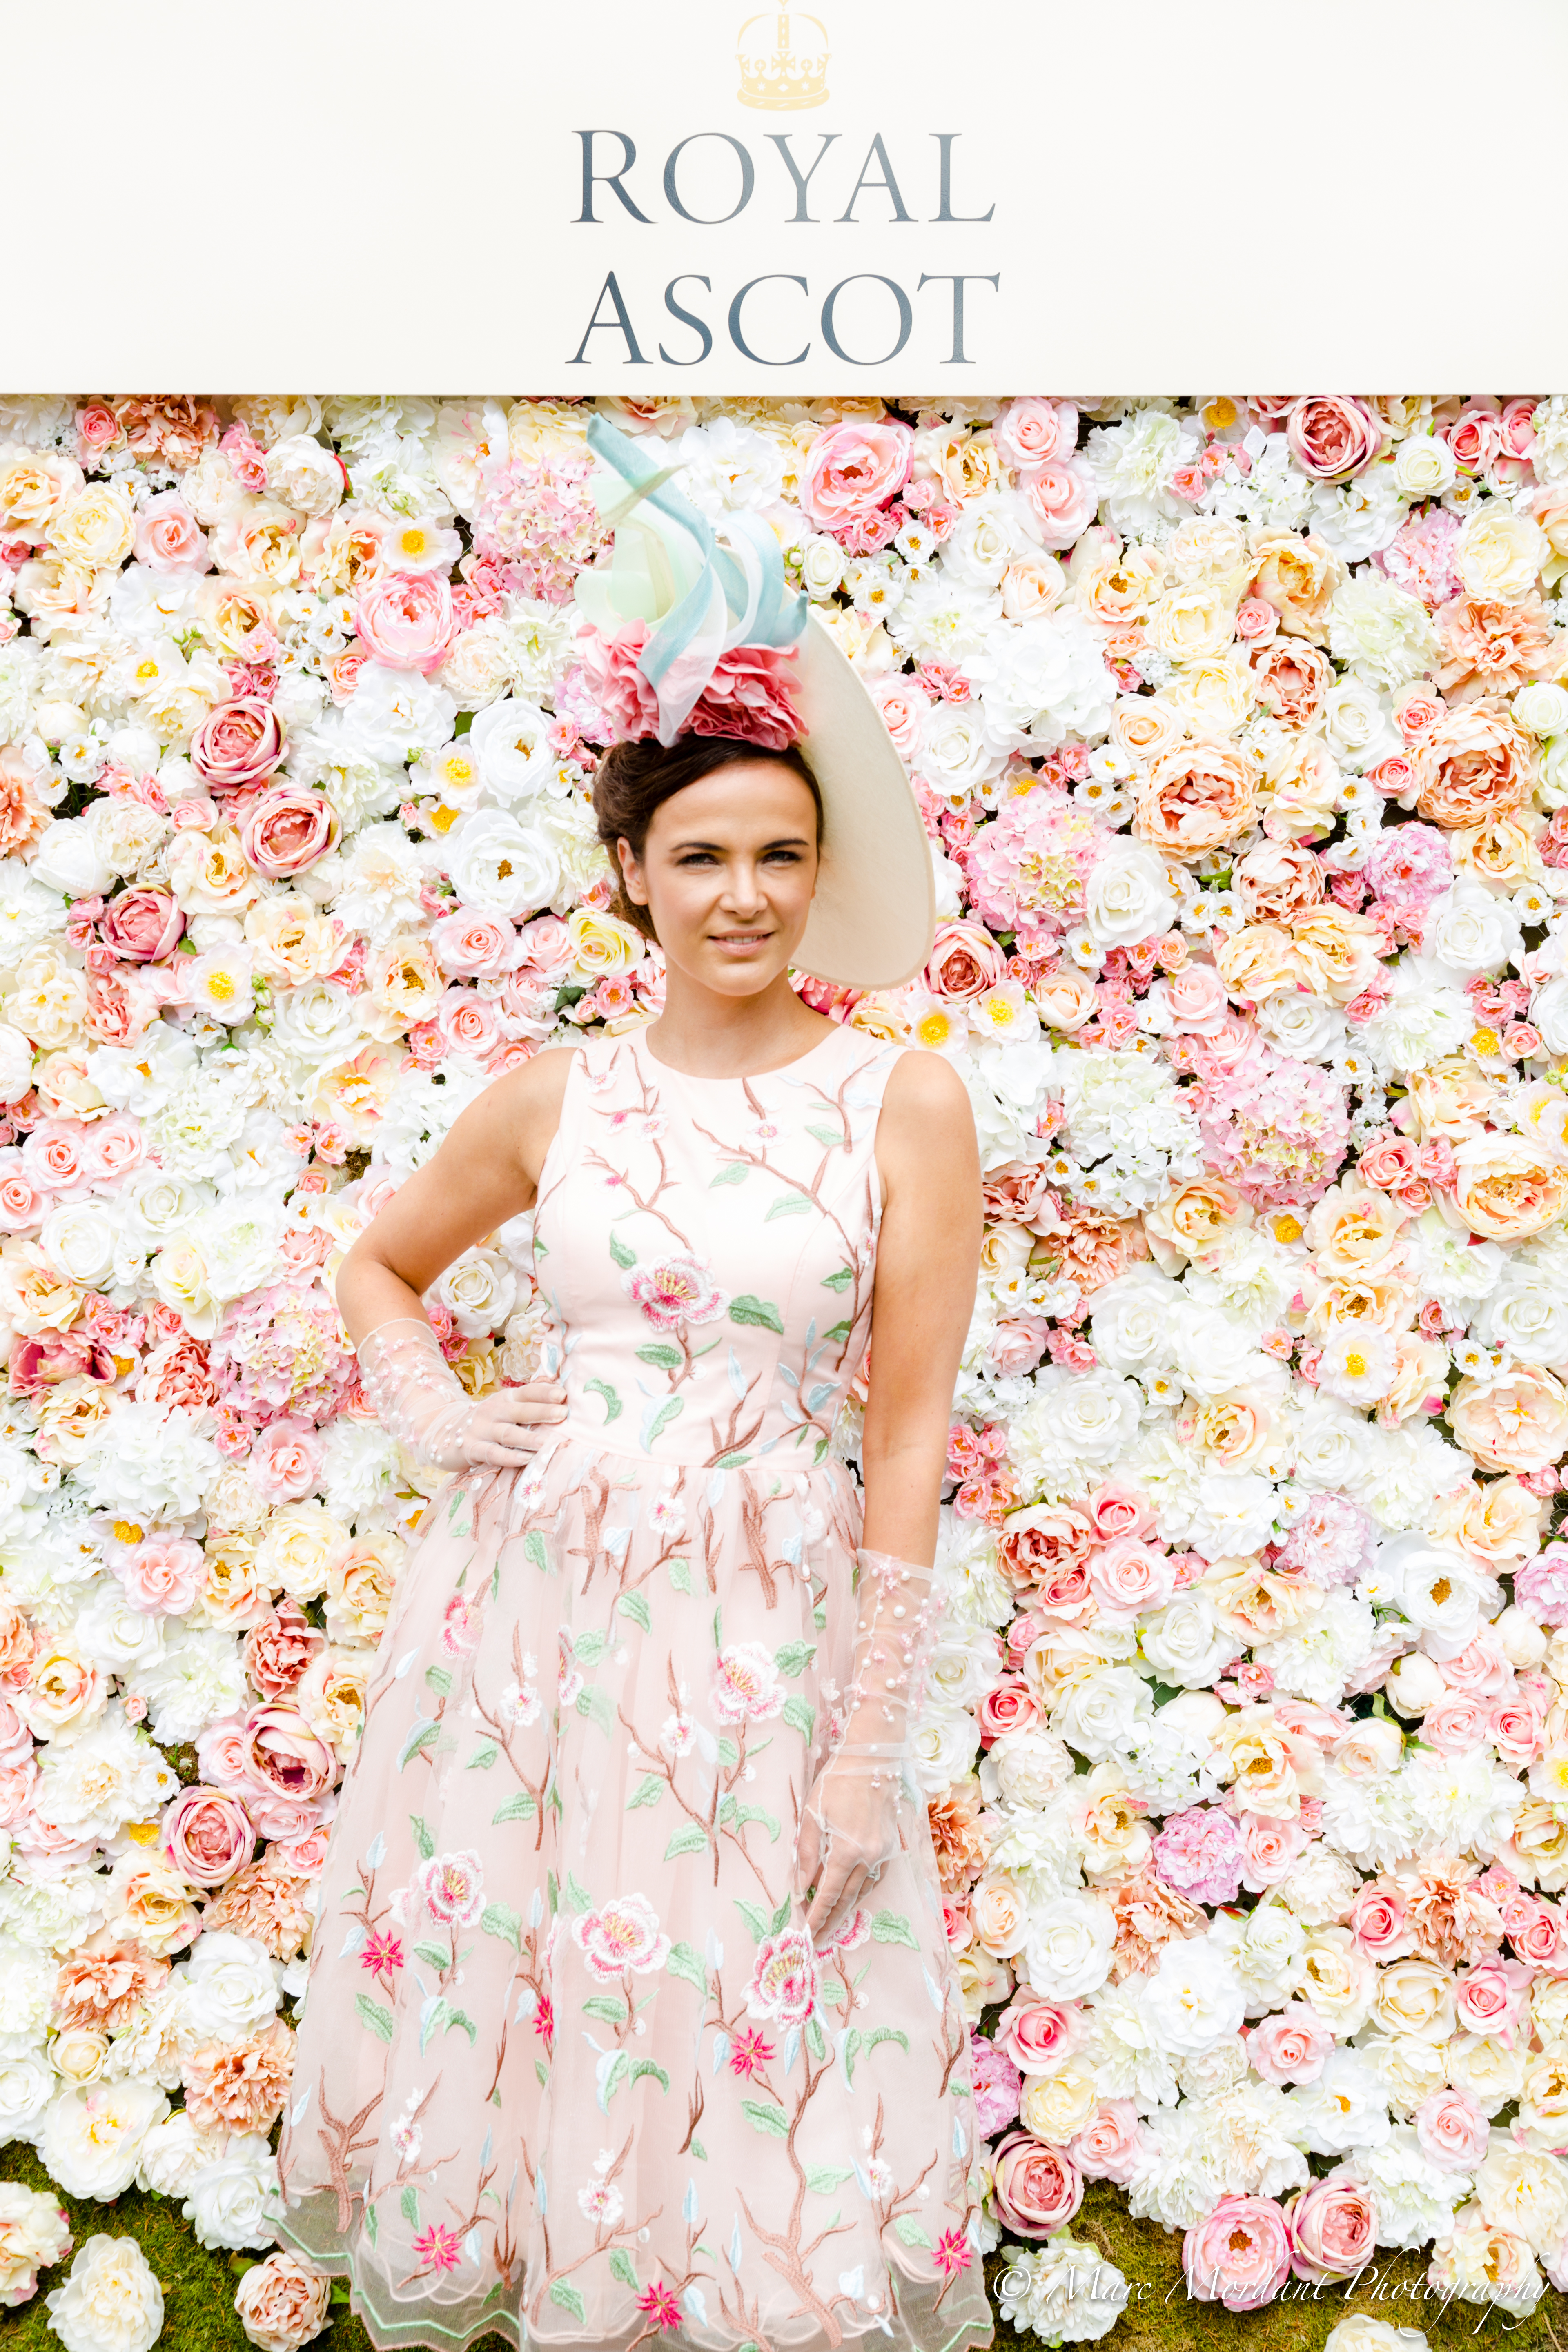 Royal Ascot ladies day fashion blogger